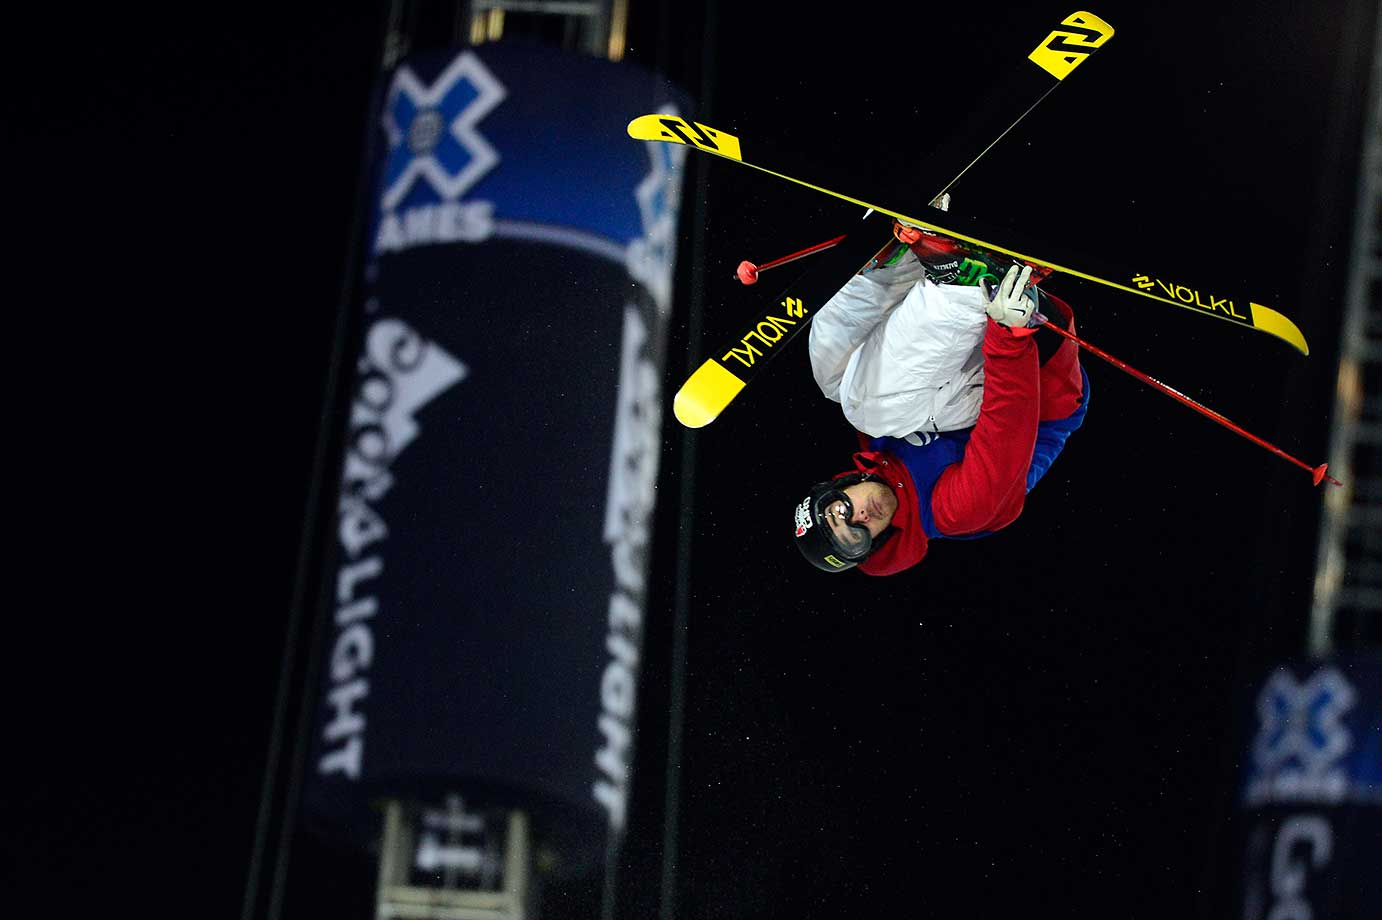 Kevin Rolland of France competes in his final run on the ski halfpipe at Winter X Games 2016 Aspen at Buttermilk Mountain in Colorado. Rolland's score of 93.33 earned him the gold medal.